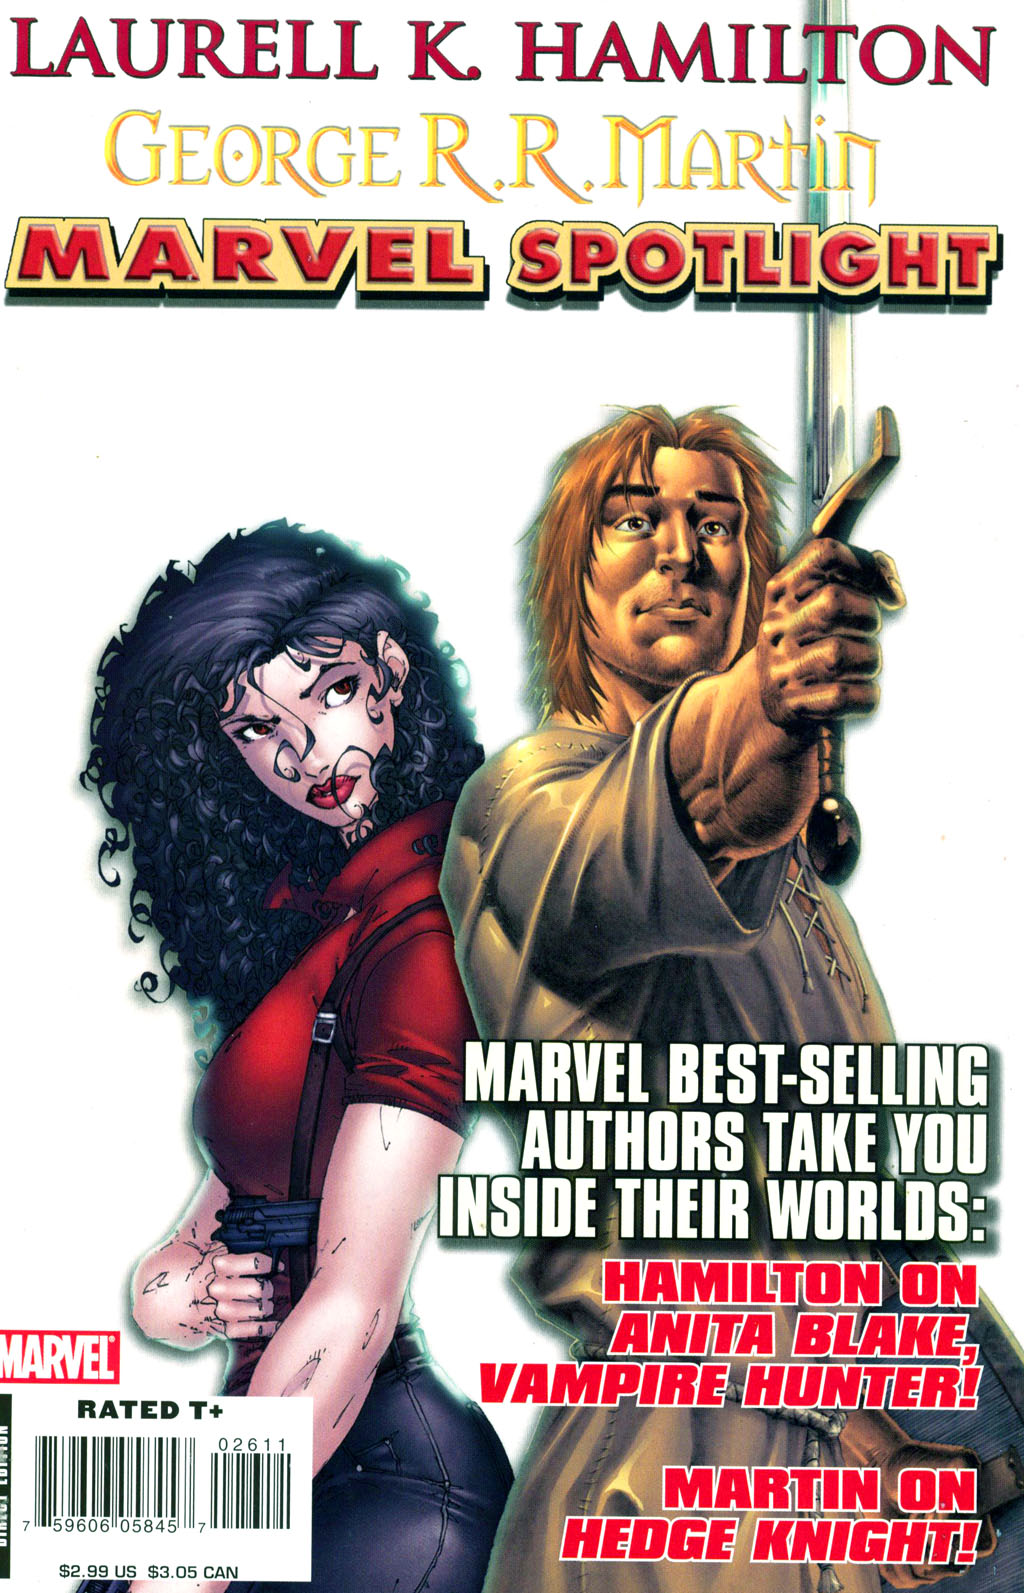 Marvel Spotlight: Laurell K. Hamilton / George R.R. Martin Vol 1